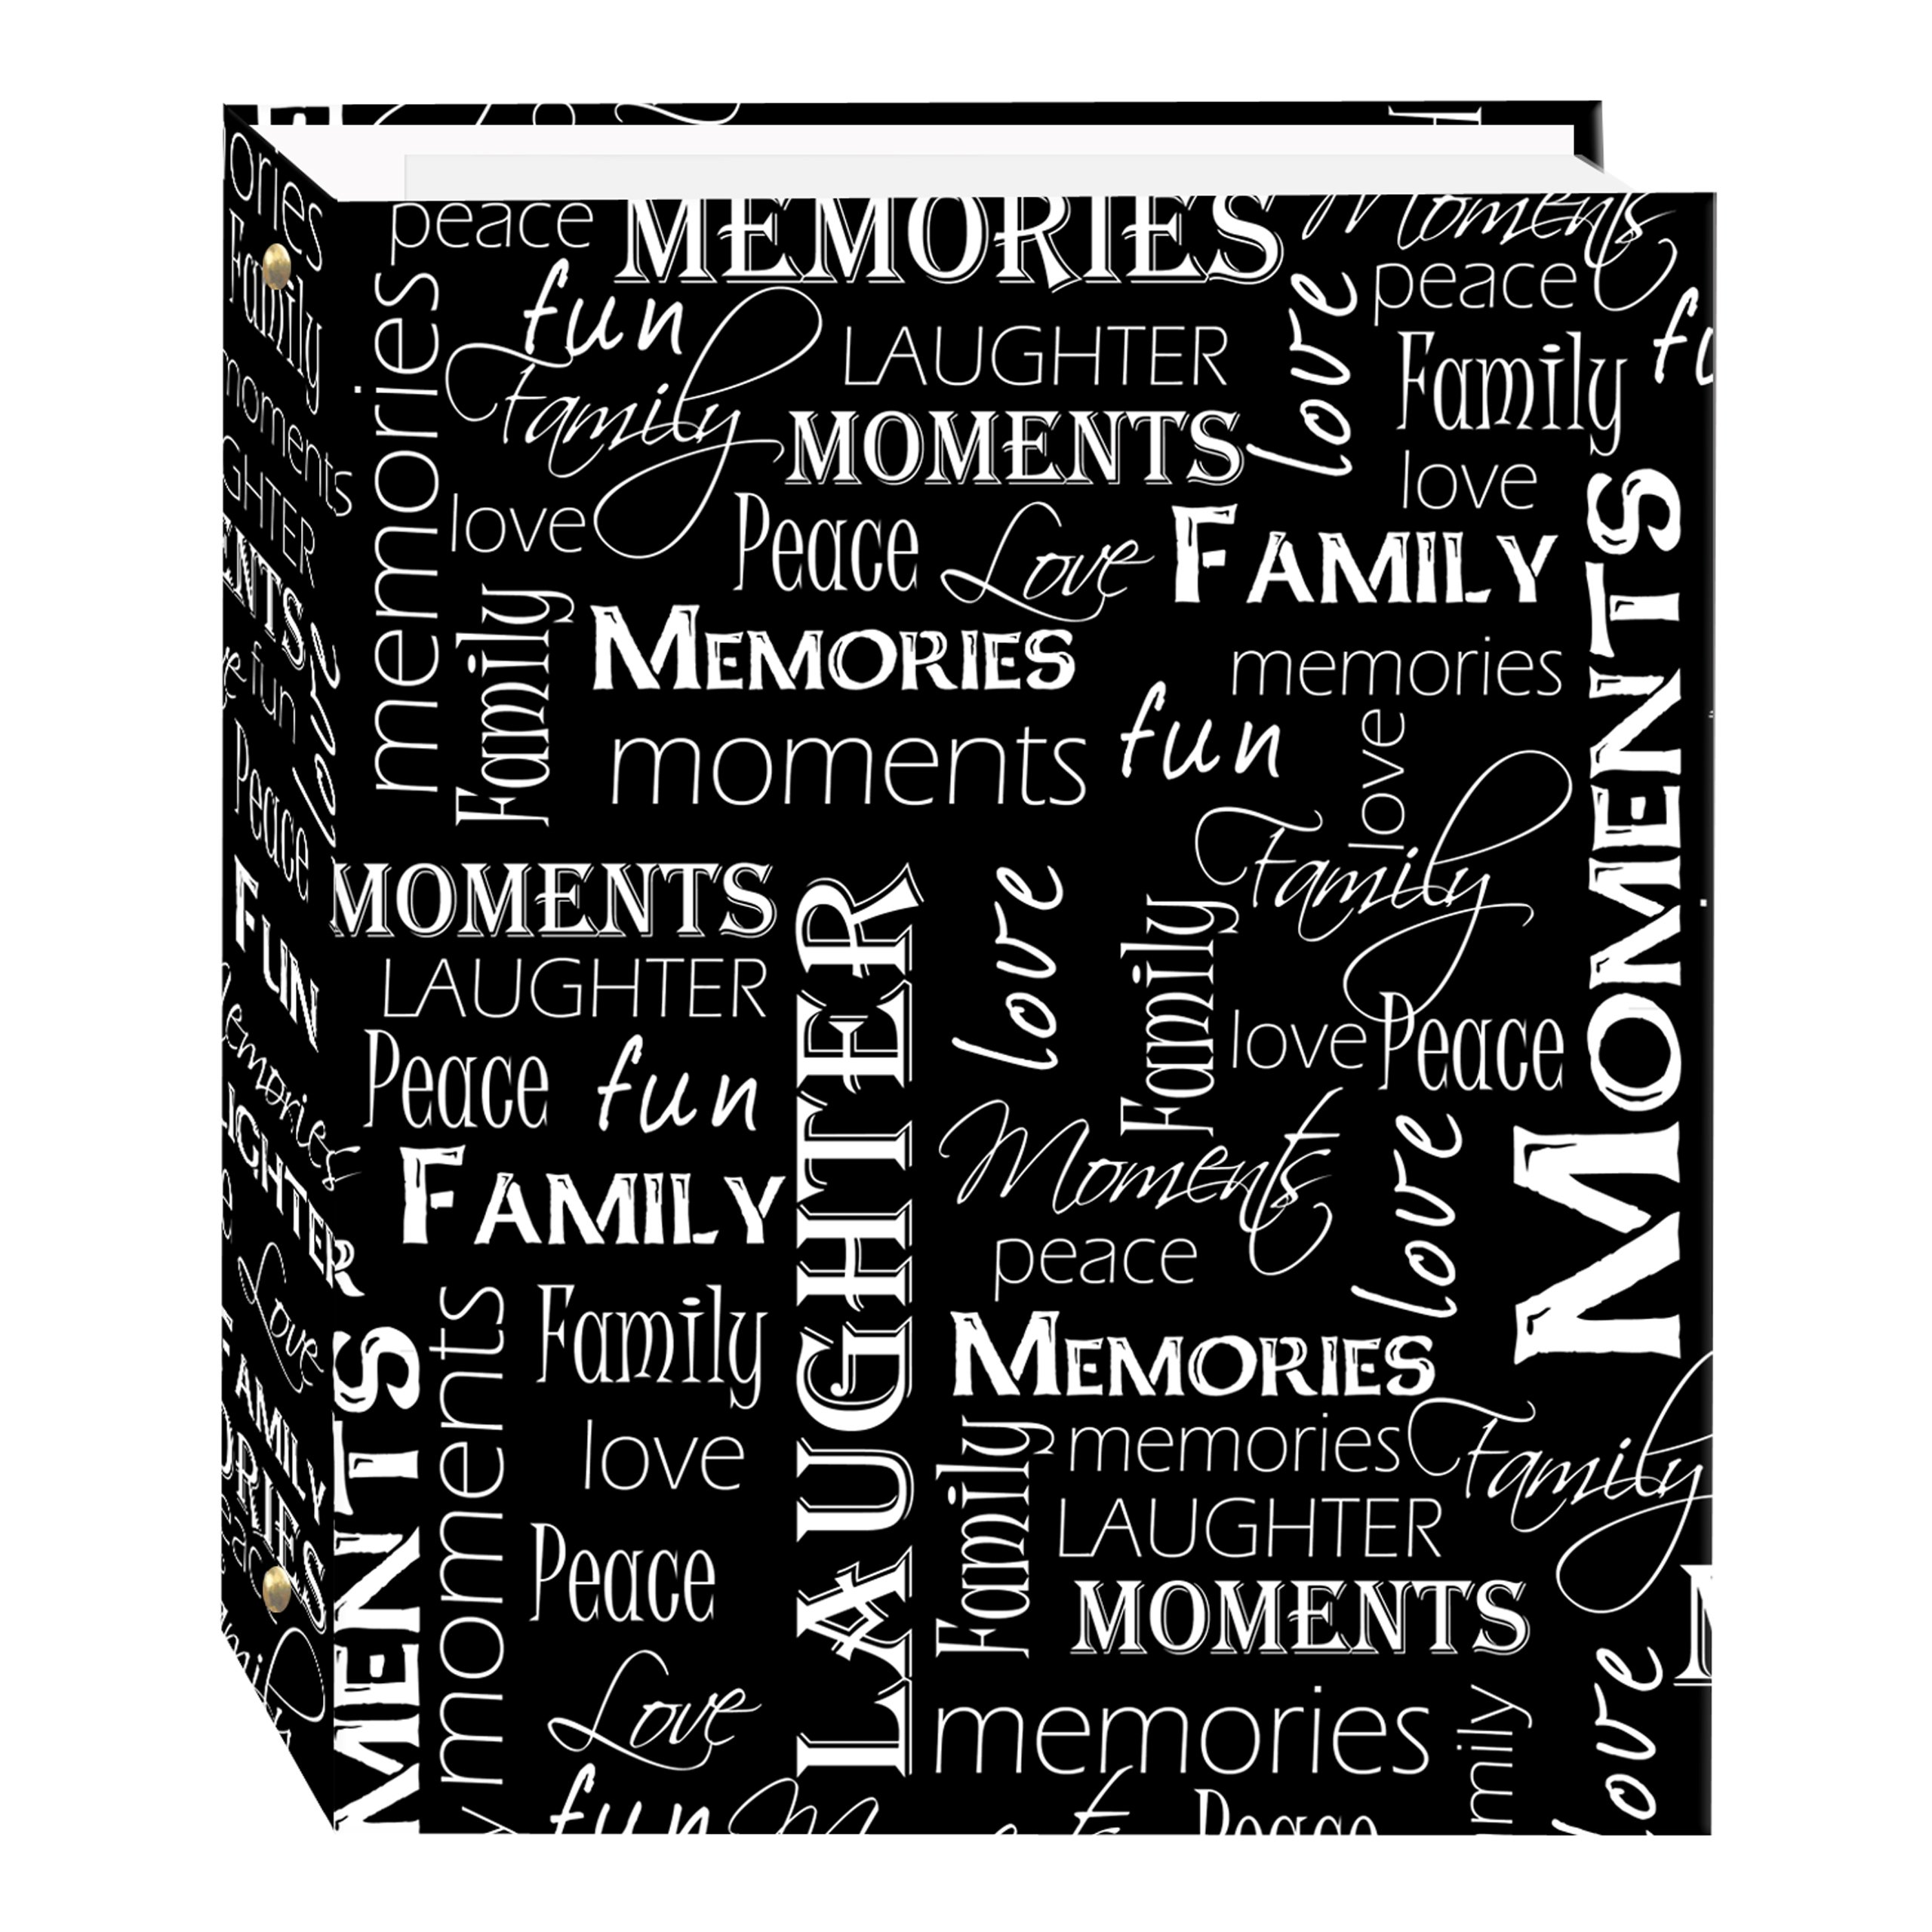 Magnetic Self-Stick 3-Ring Photo Album 100 Pages (50 Sheets), Black & White Words Design by Pioneer Photo Albums